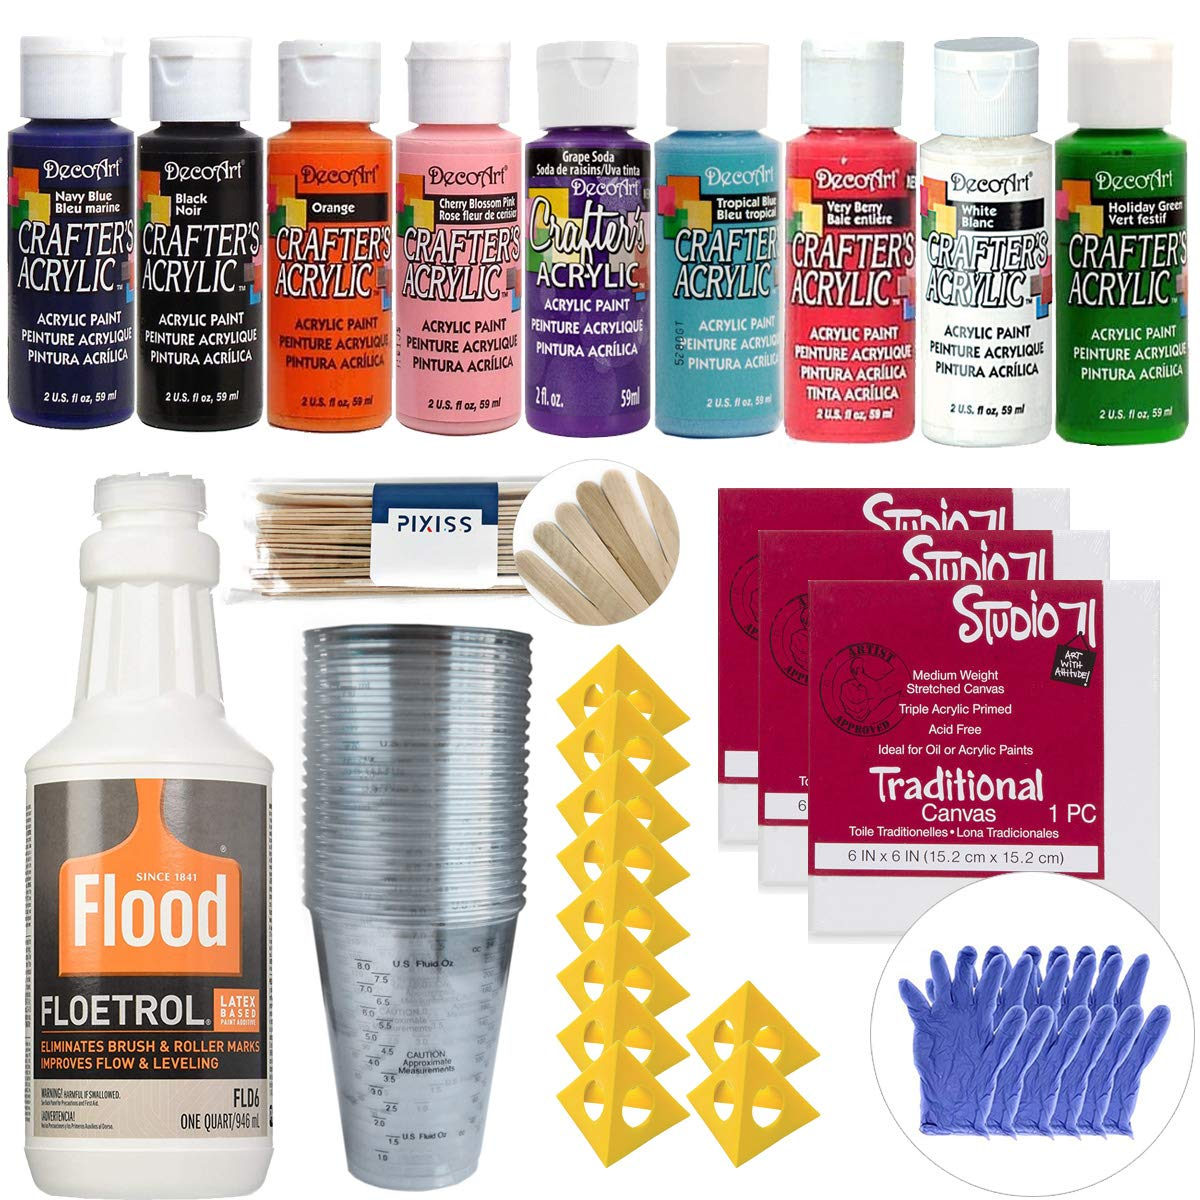 Acrylic Paint Pouring Bundle - Floetrol, Cups, 10x 2-Ounce DecoArt Acrylic Paints, 3X 6-inch Canvases, 10x Painter's Pyramids, Mixing Sticks, Gloves, Complete Kit for Paint Pouring 10x Painter' s Pyramids Various